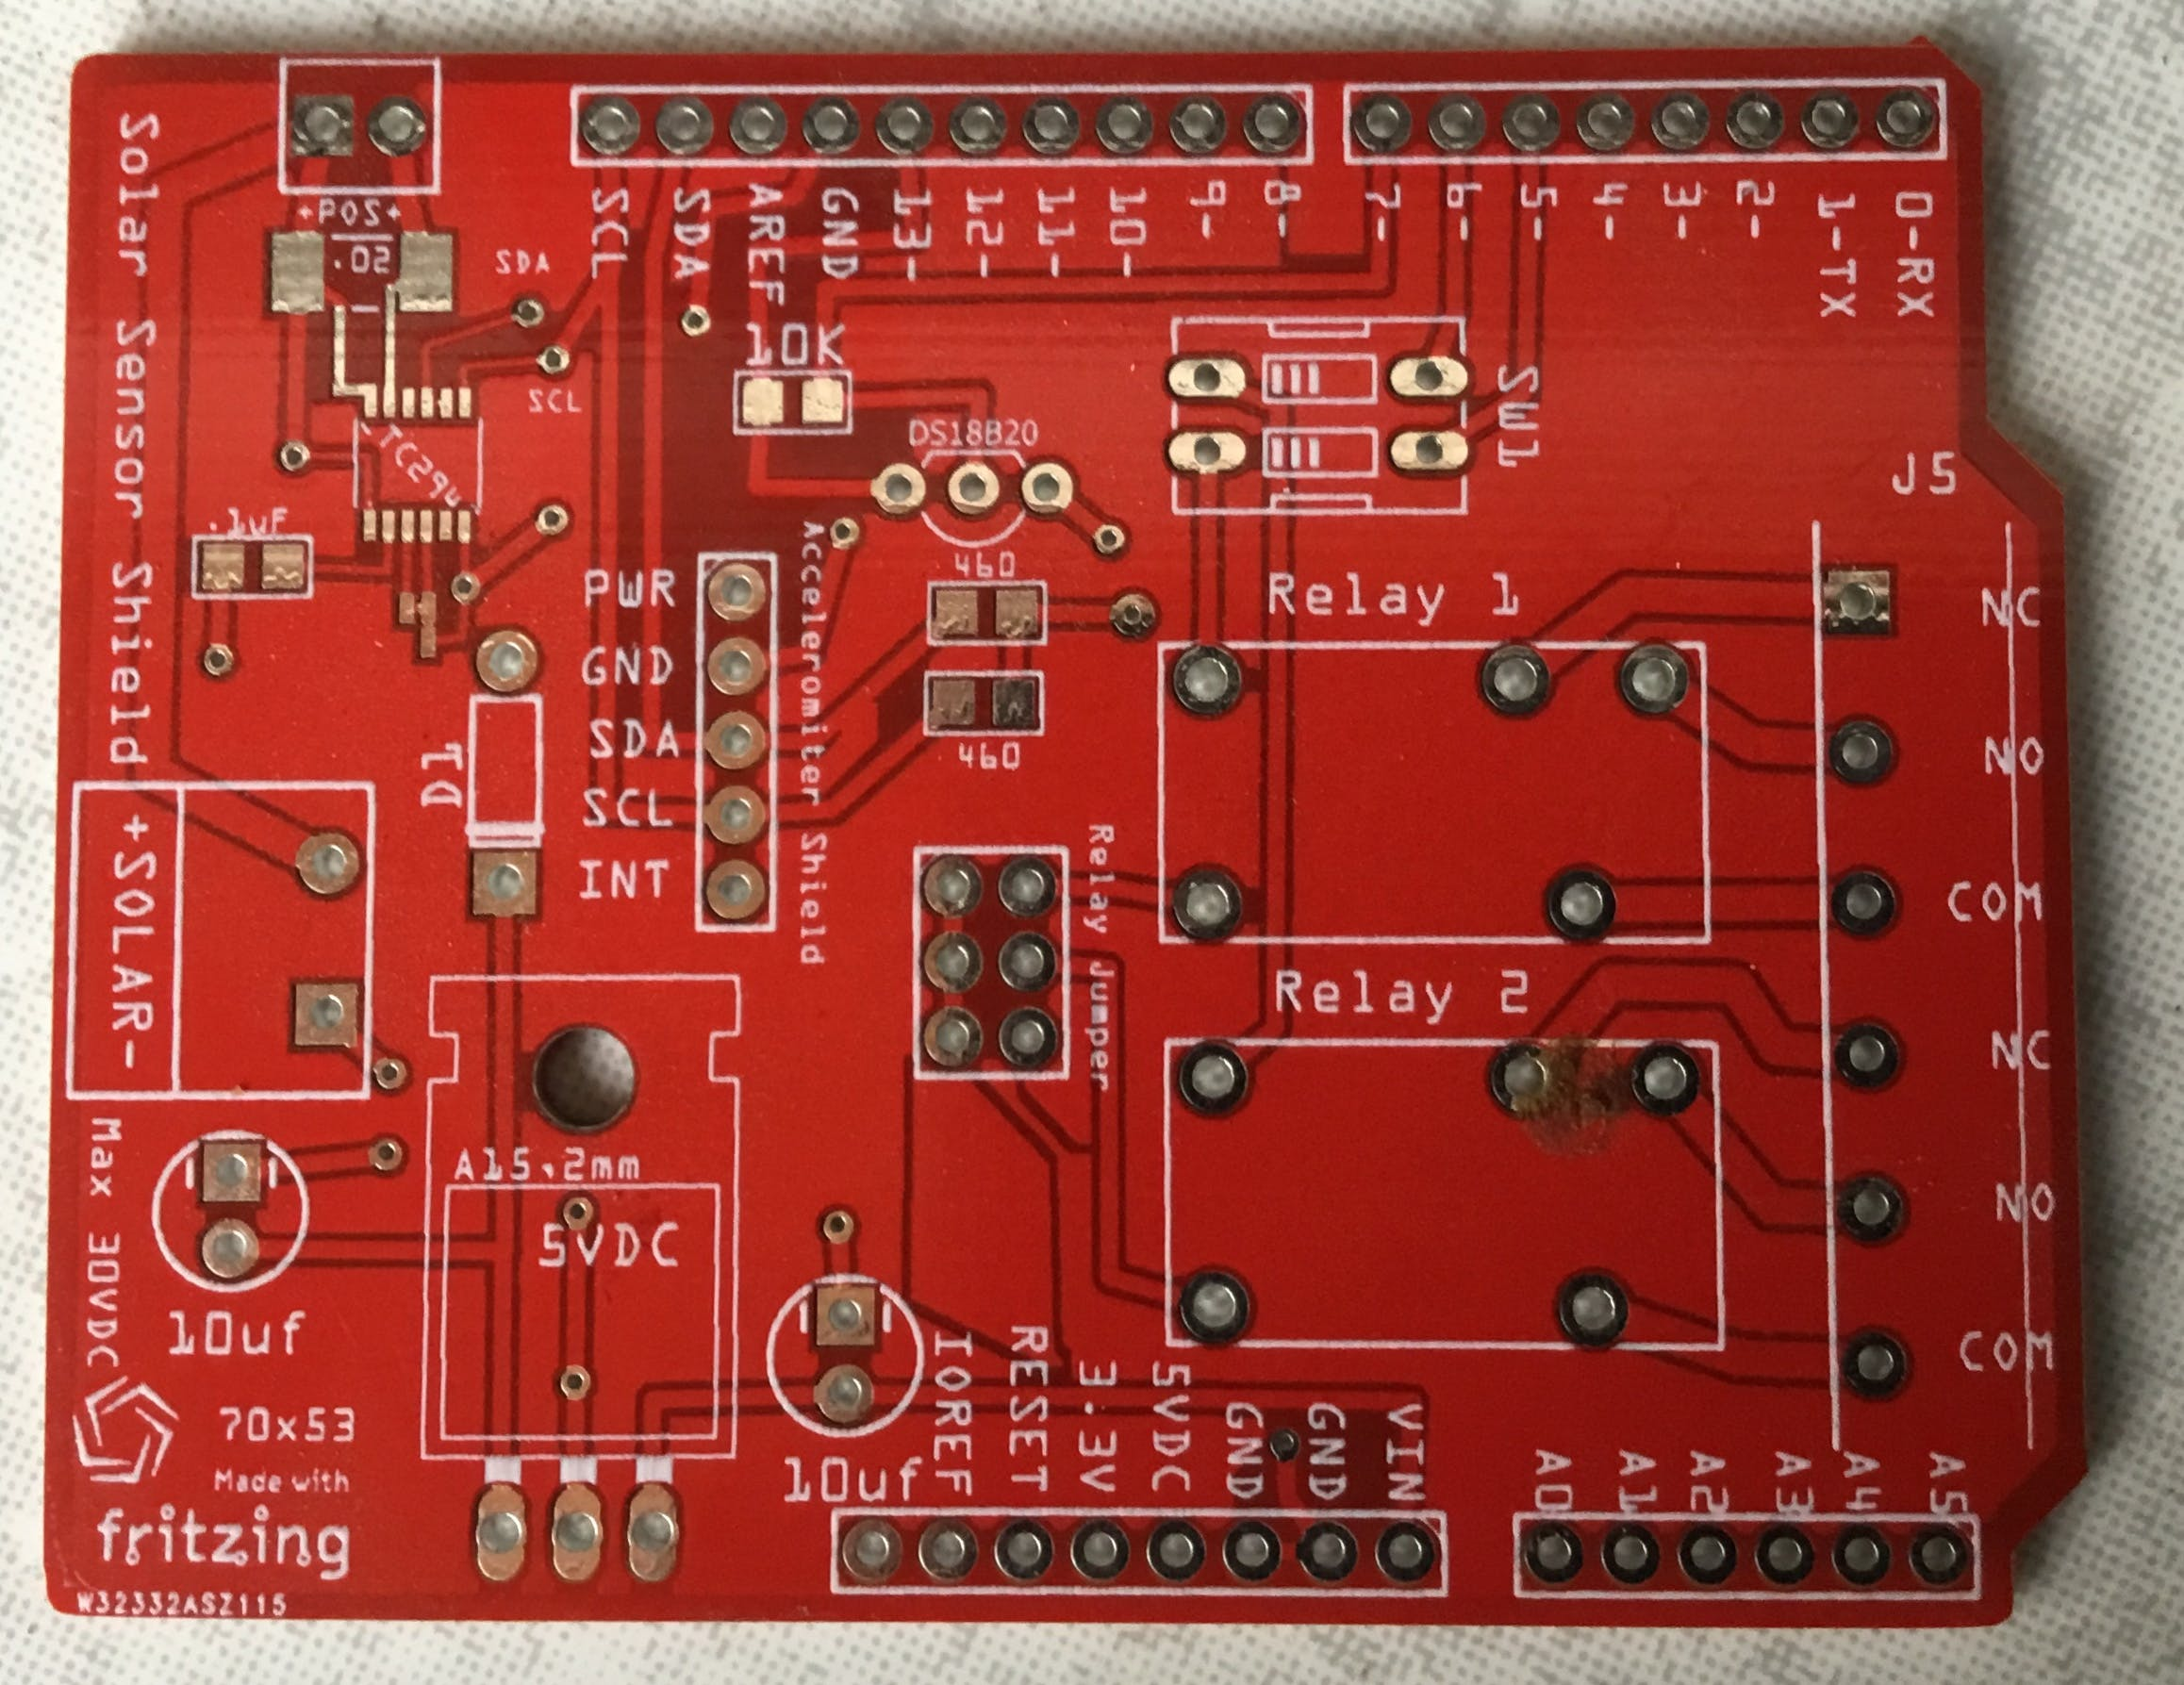 Board from PCBway